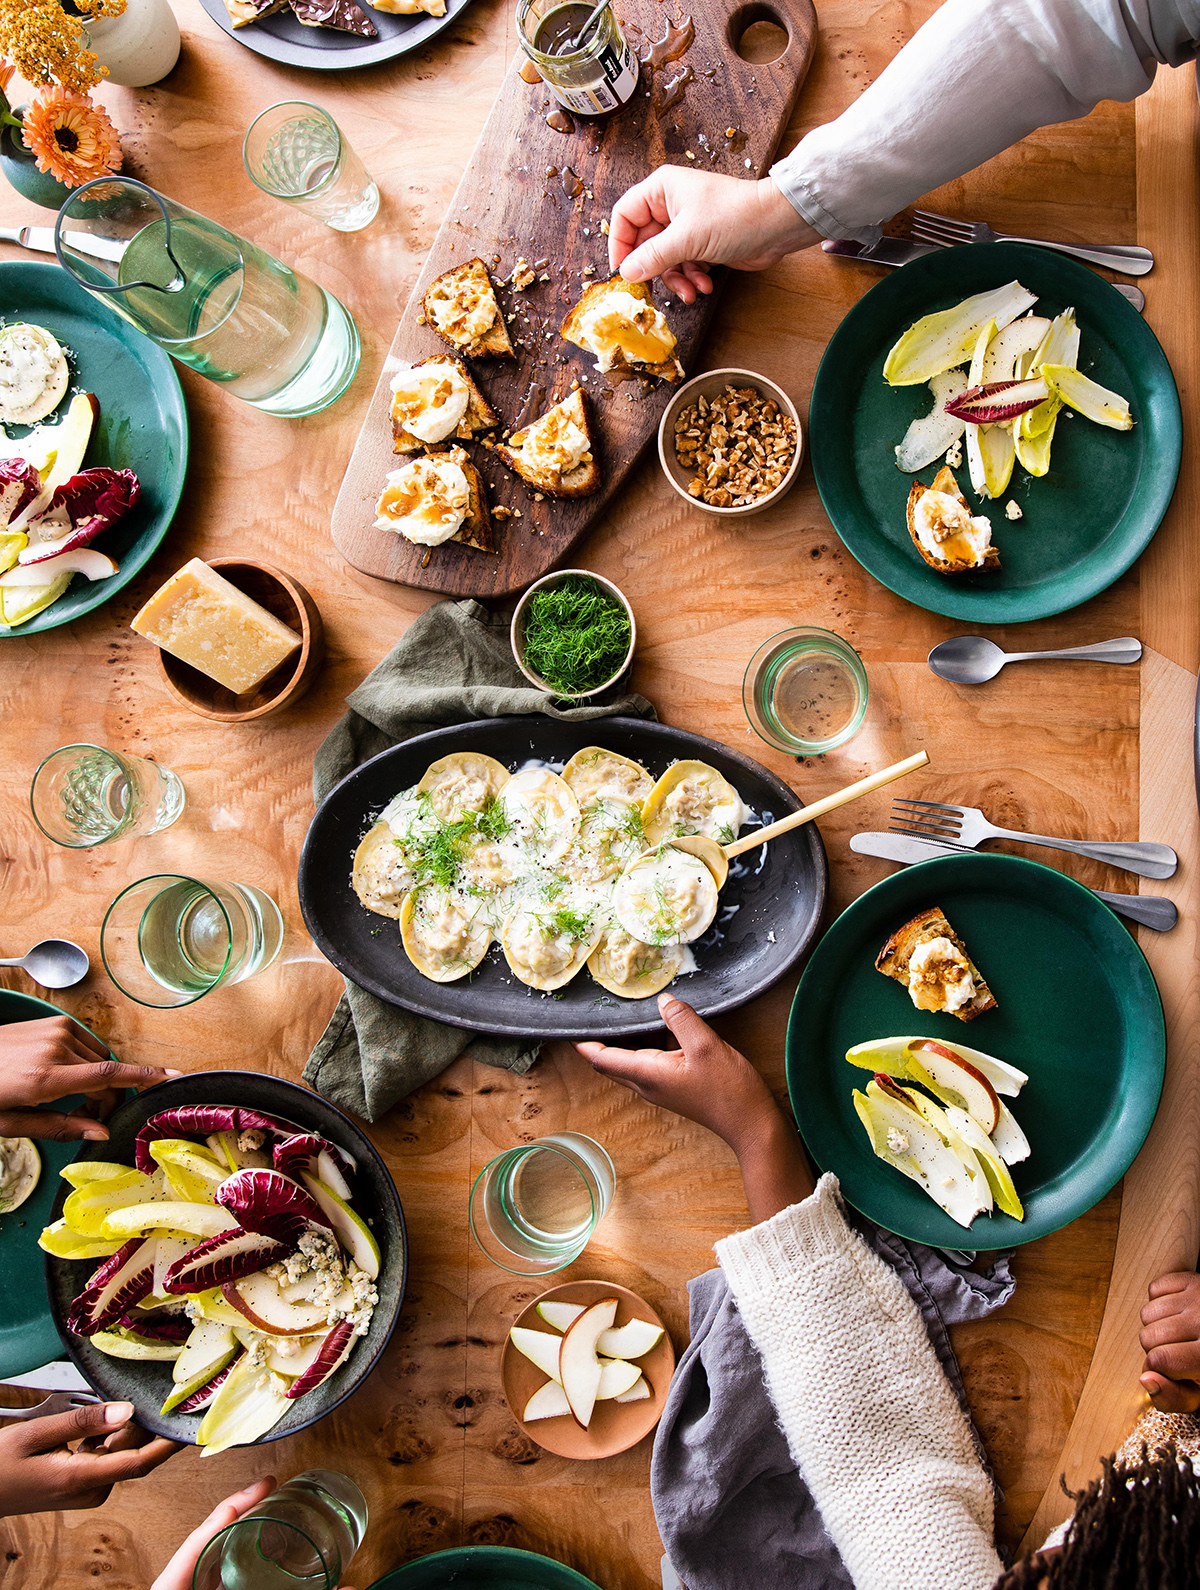 salt and straw table setting with food